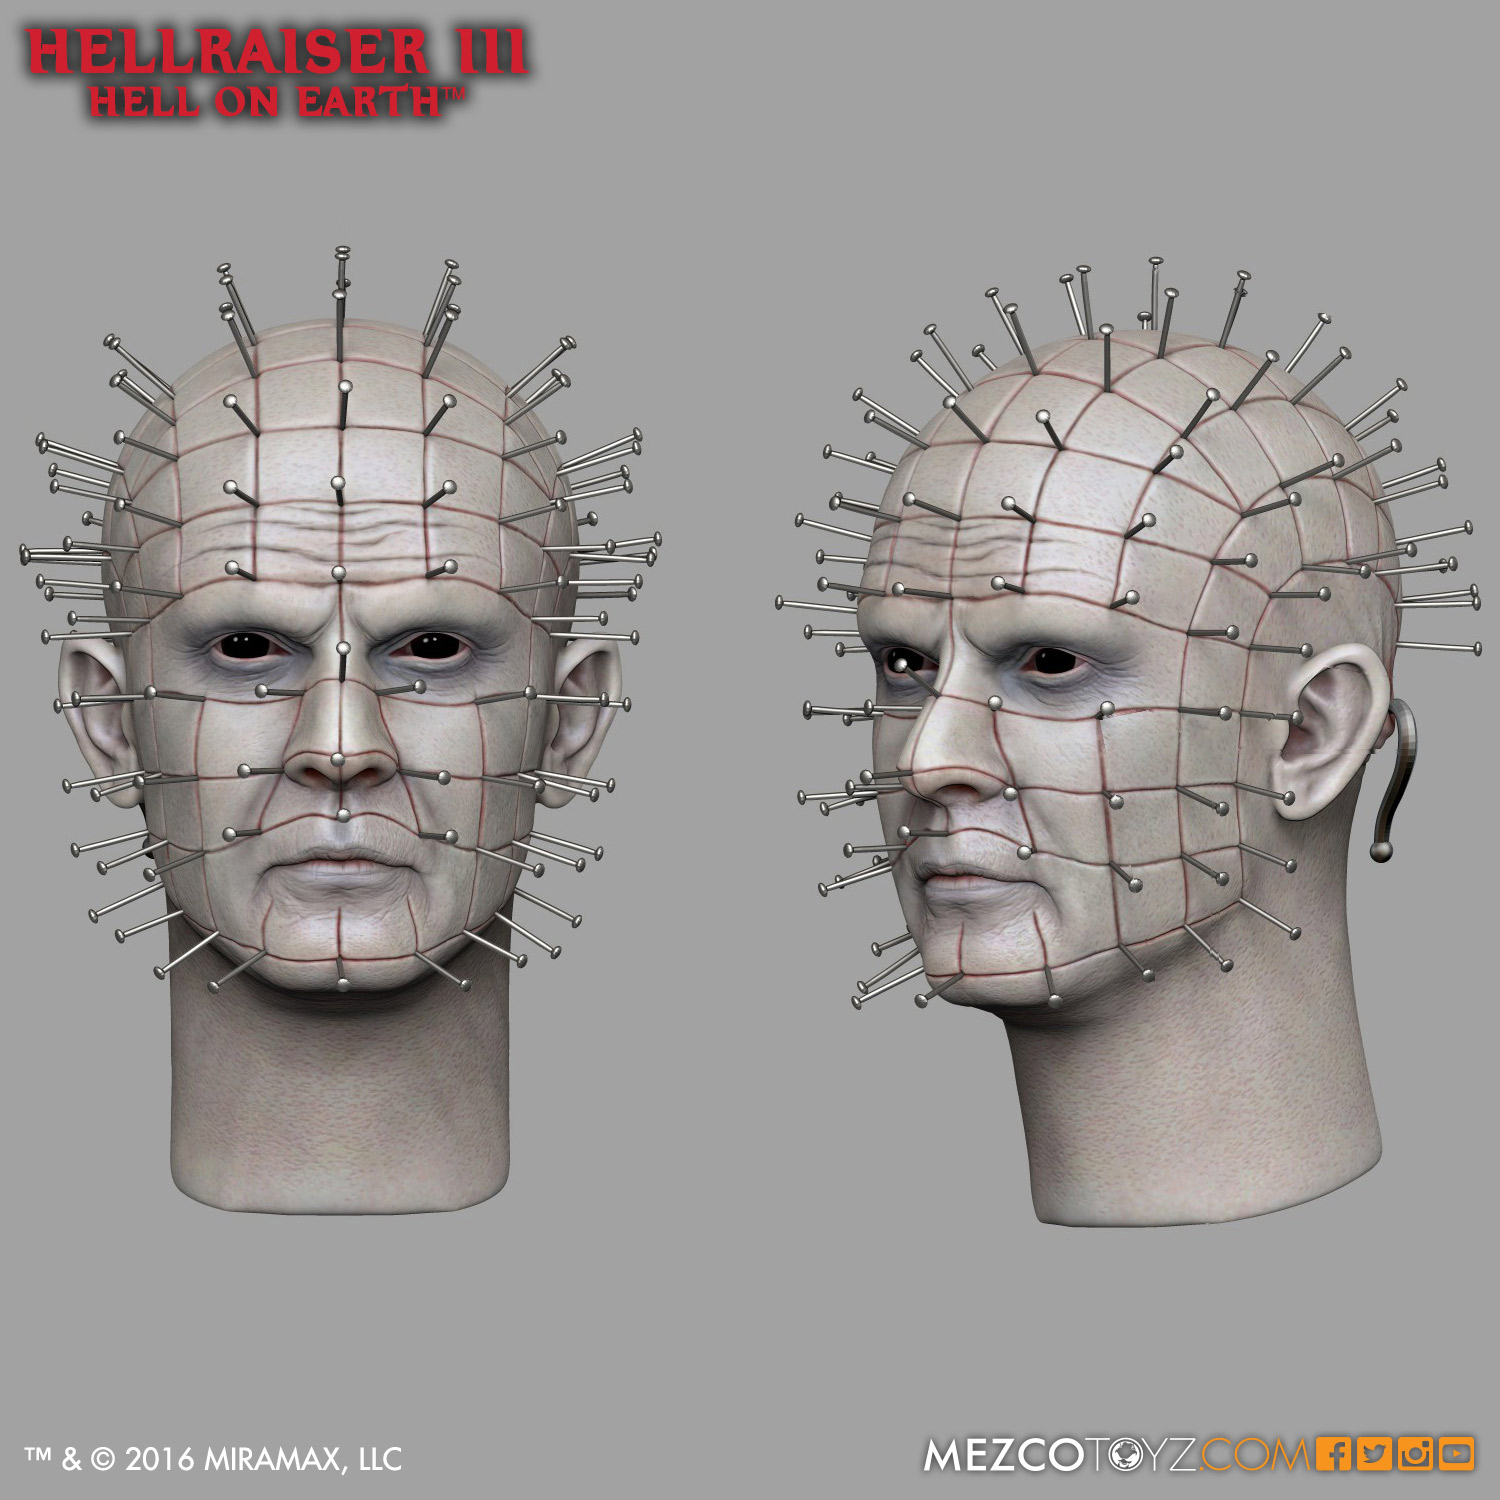 Hellraiser III: Hell on Earth 12